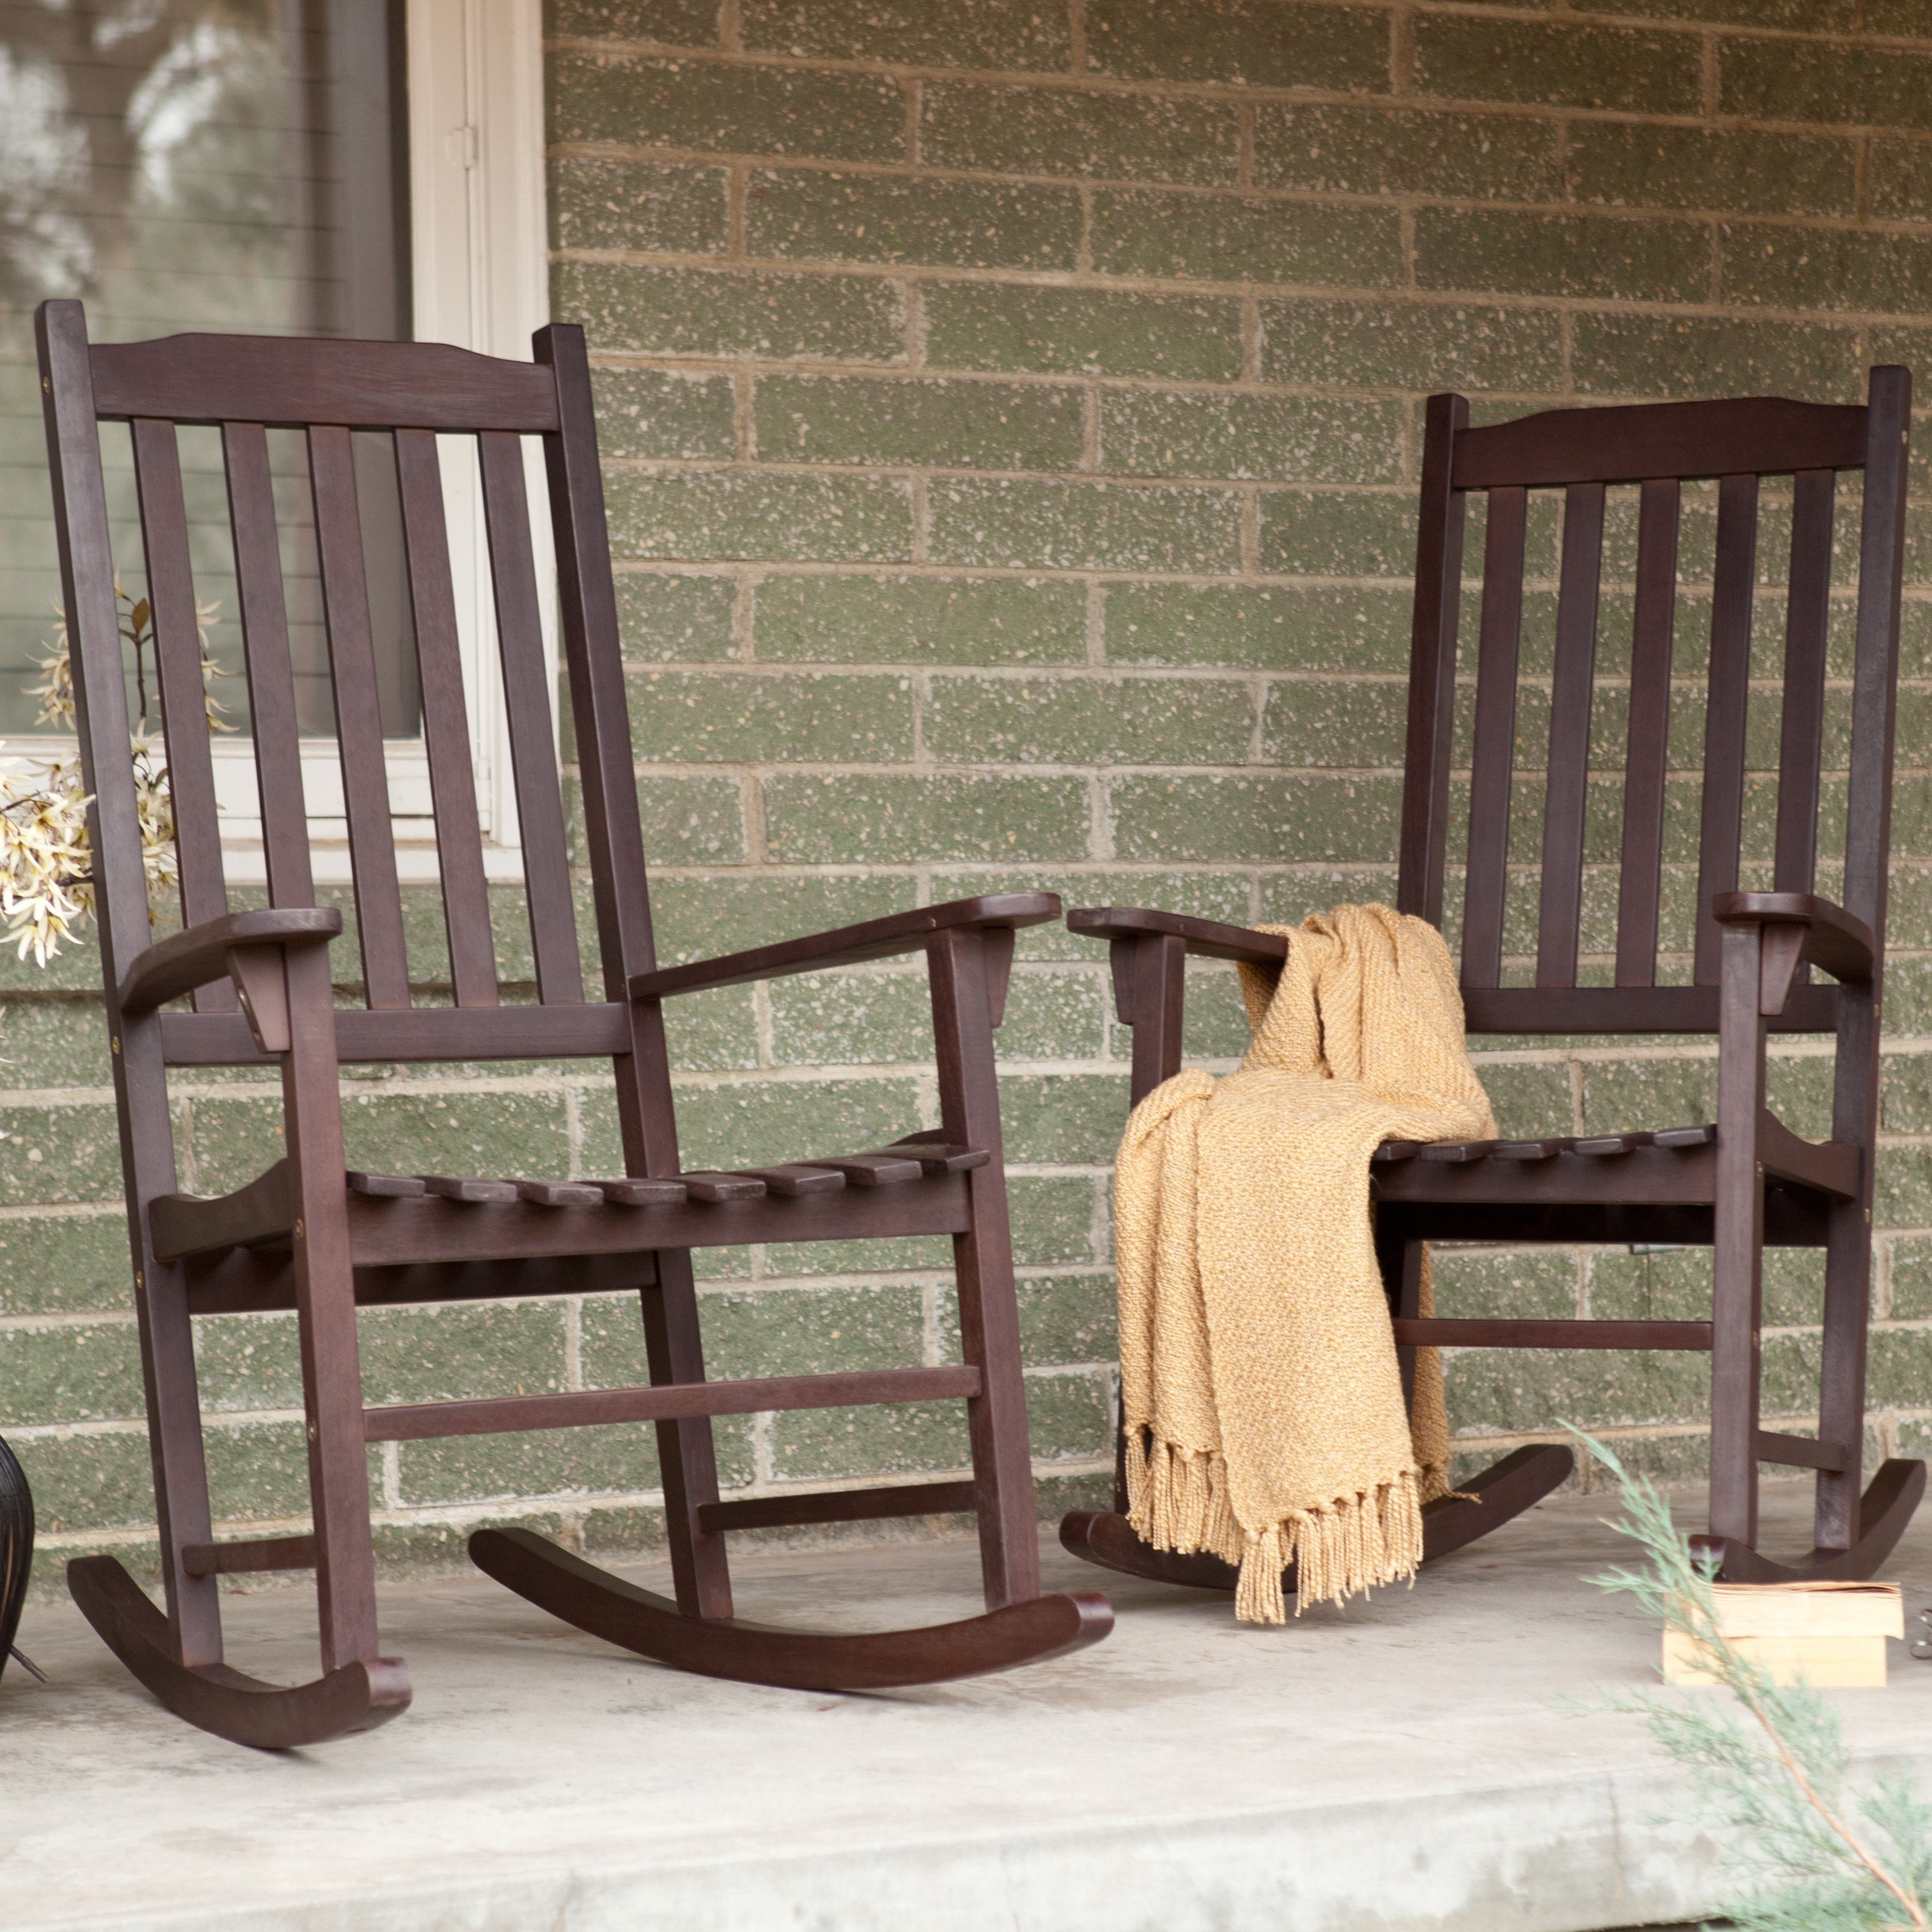 Oversized Patio Rocking Chairs With Regard To Well Known A Guide To Find The Right Outdoor Rocking Chair For Your House (View 11 of 15)